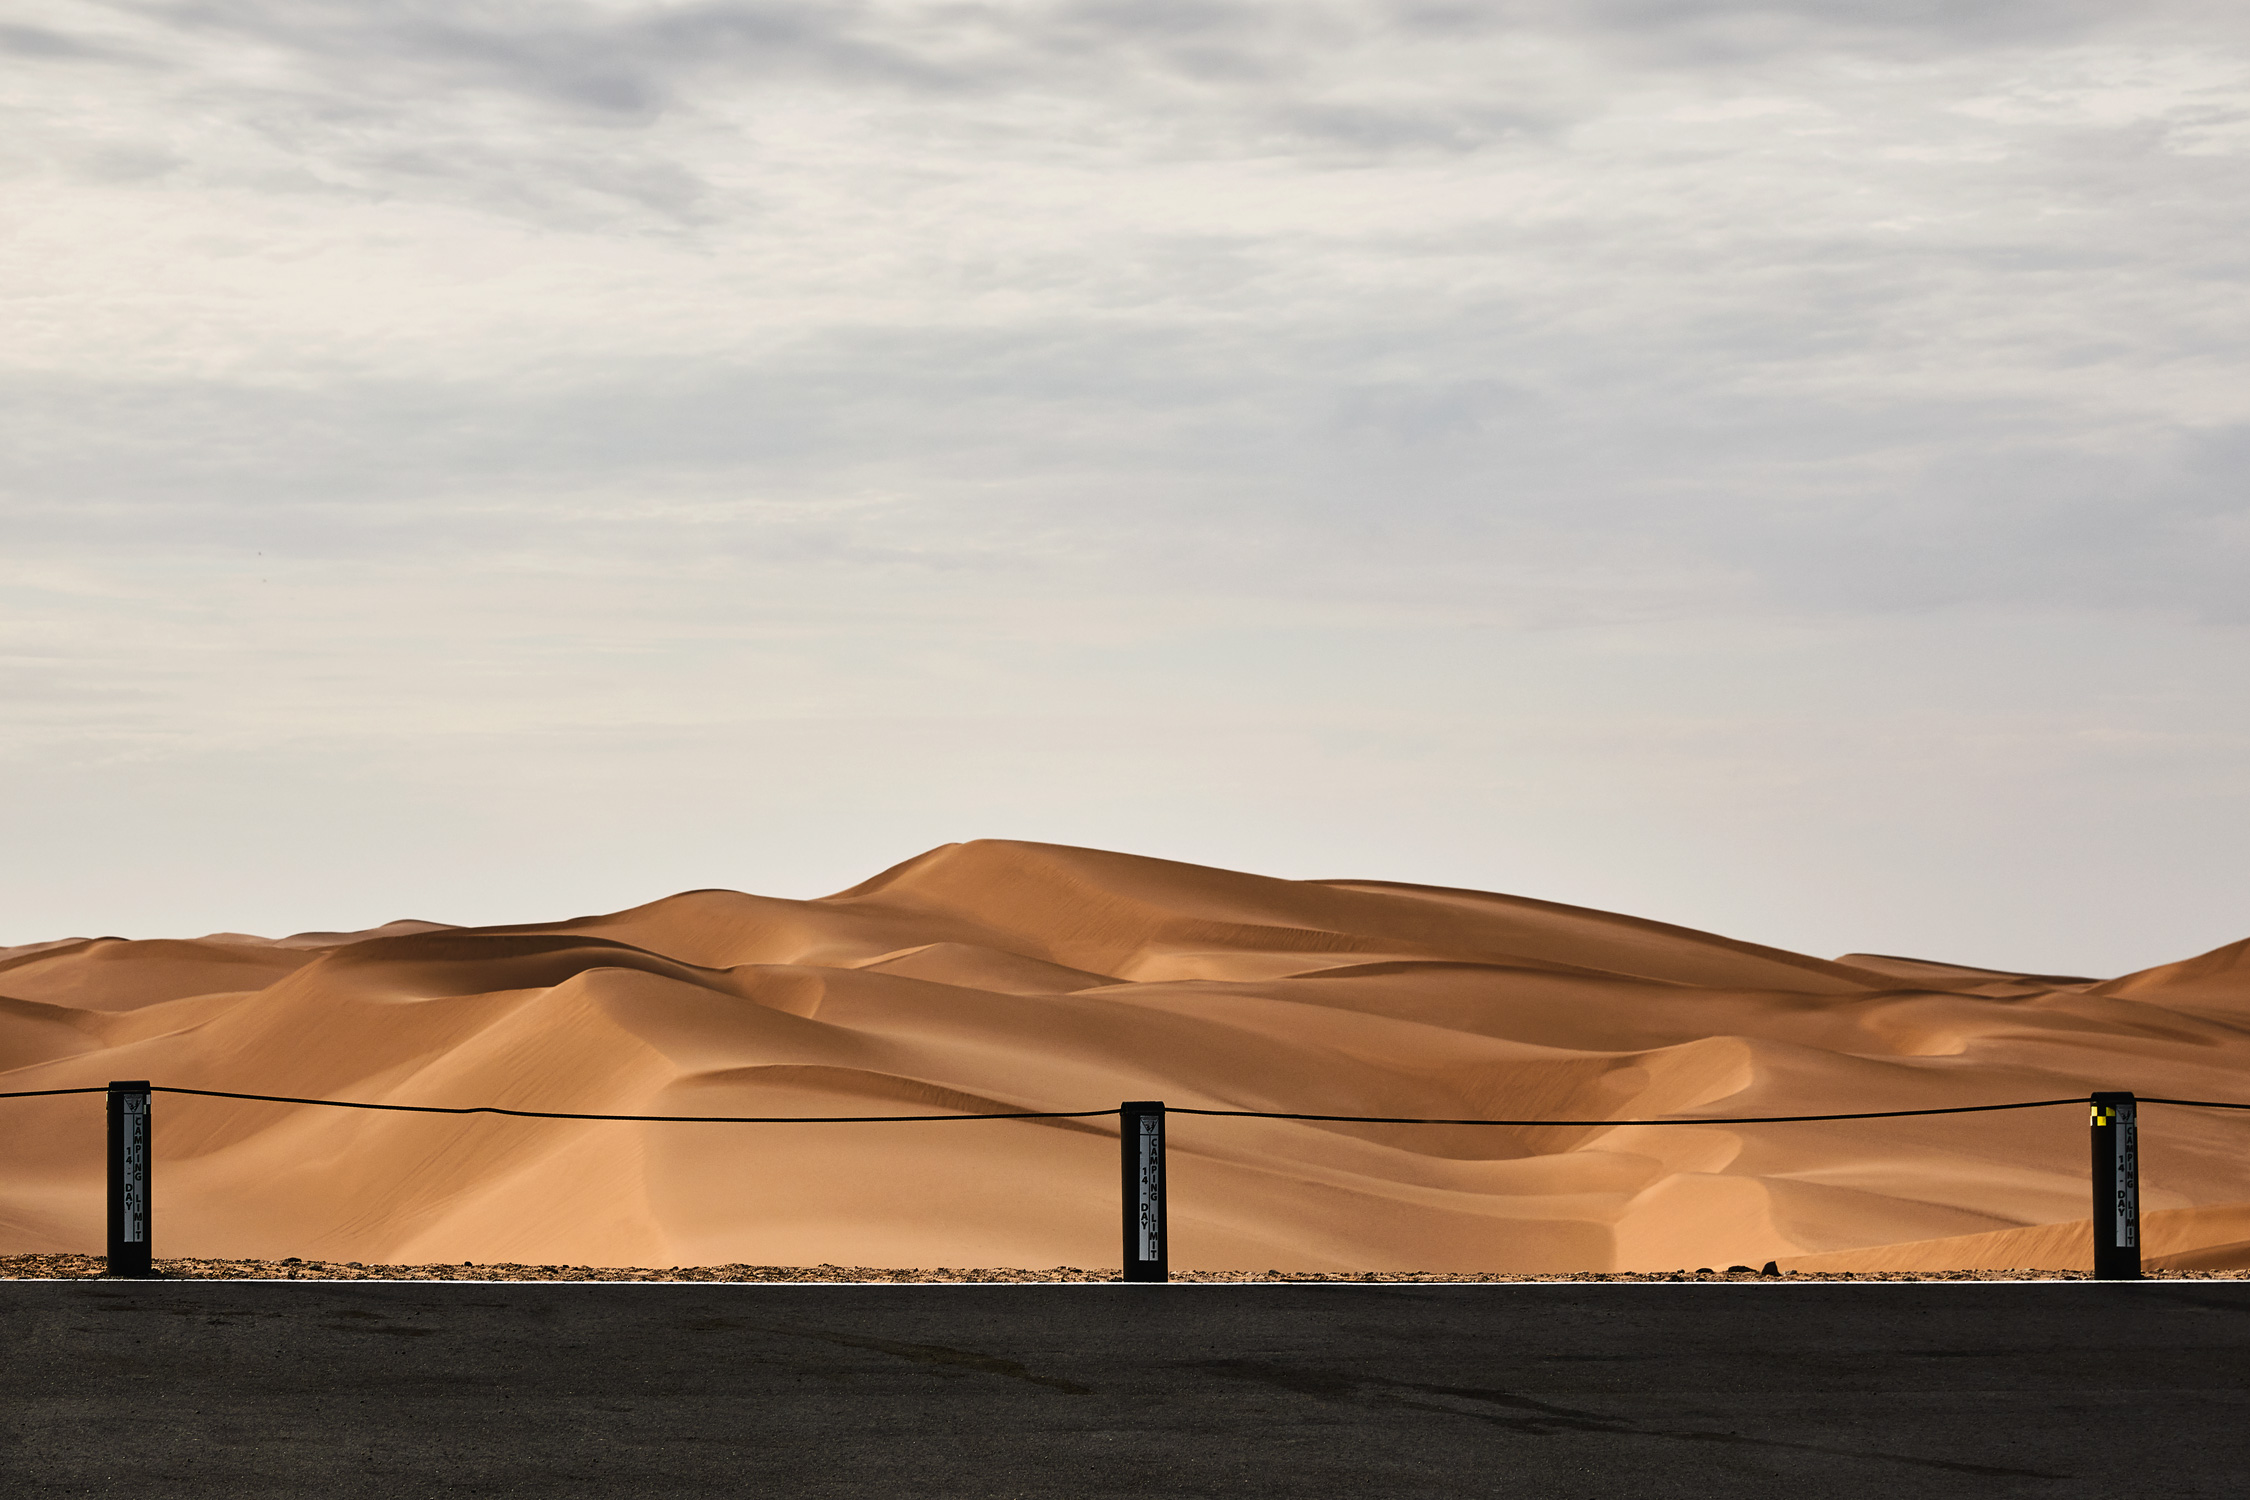 Imperial Sand Dunes  -  Stephen Denton Photography -  Los Angeles, California based  Commercial Photographer